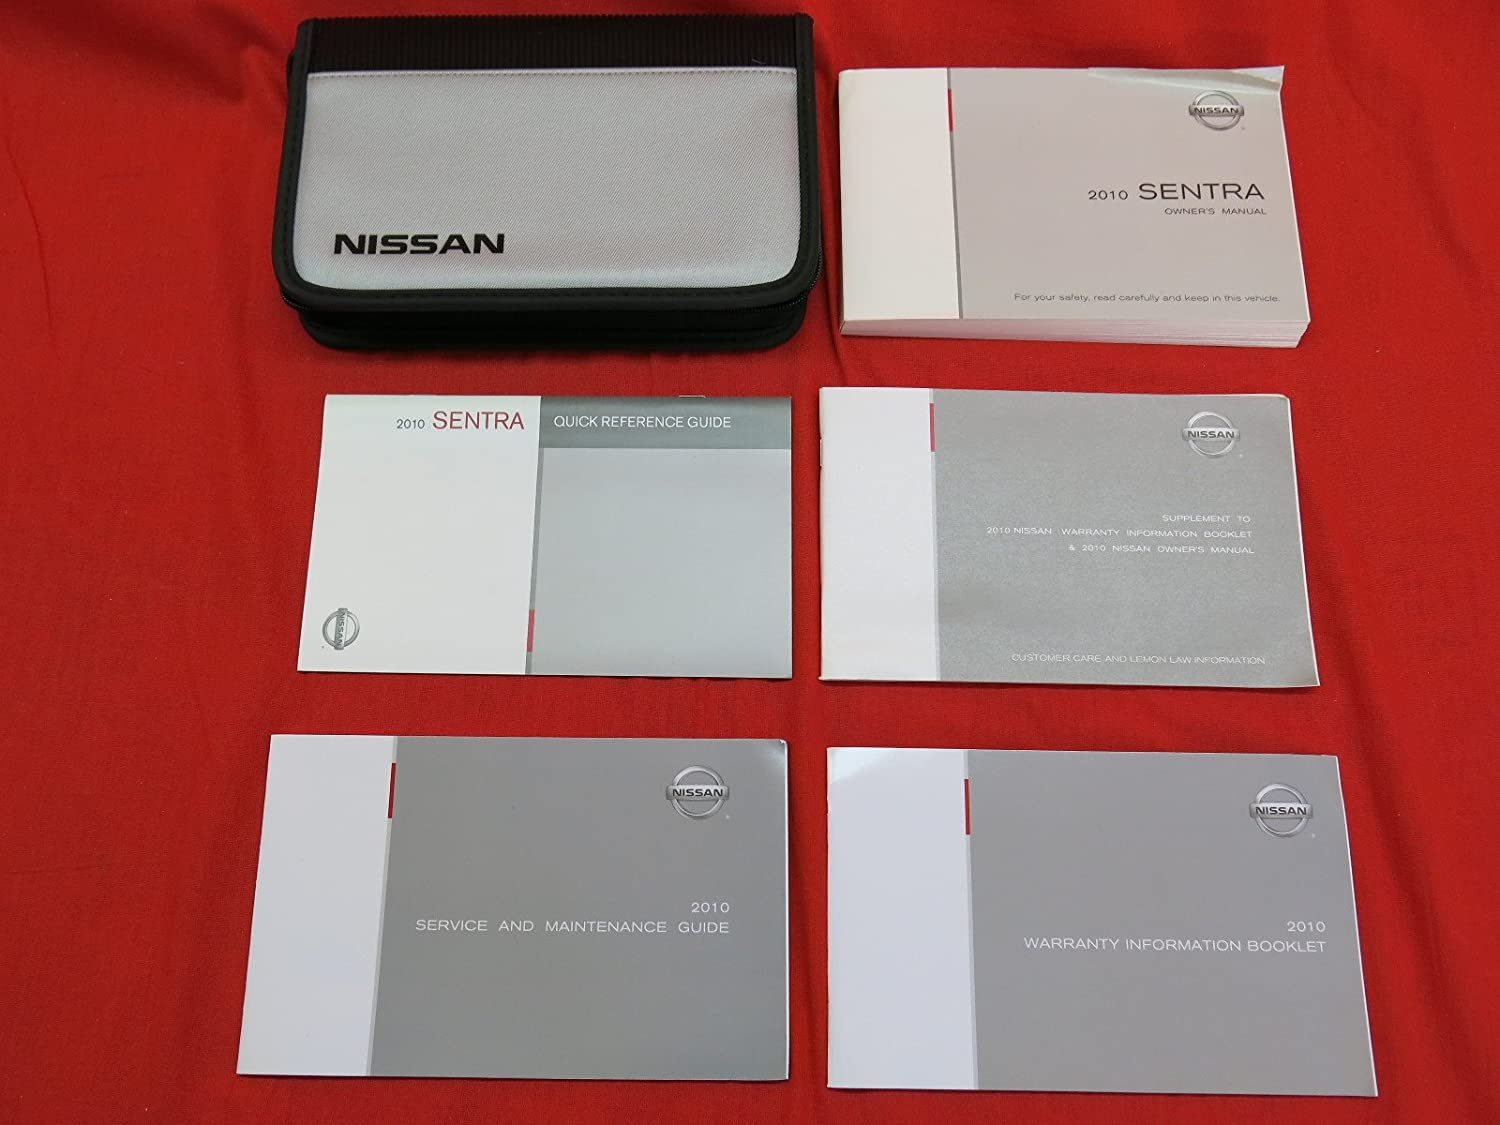 Nissan Sentra Owners Manual: Tire equipment